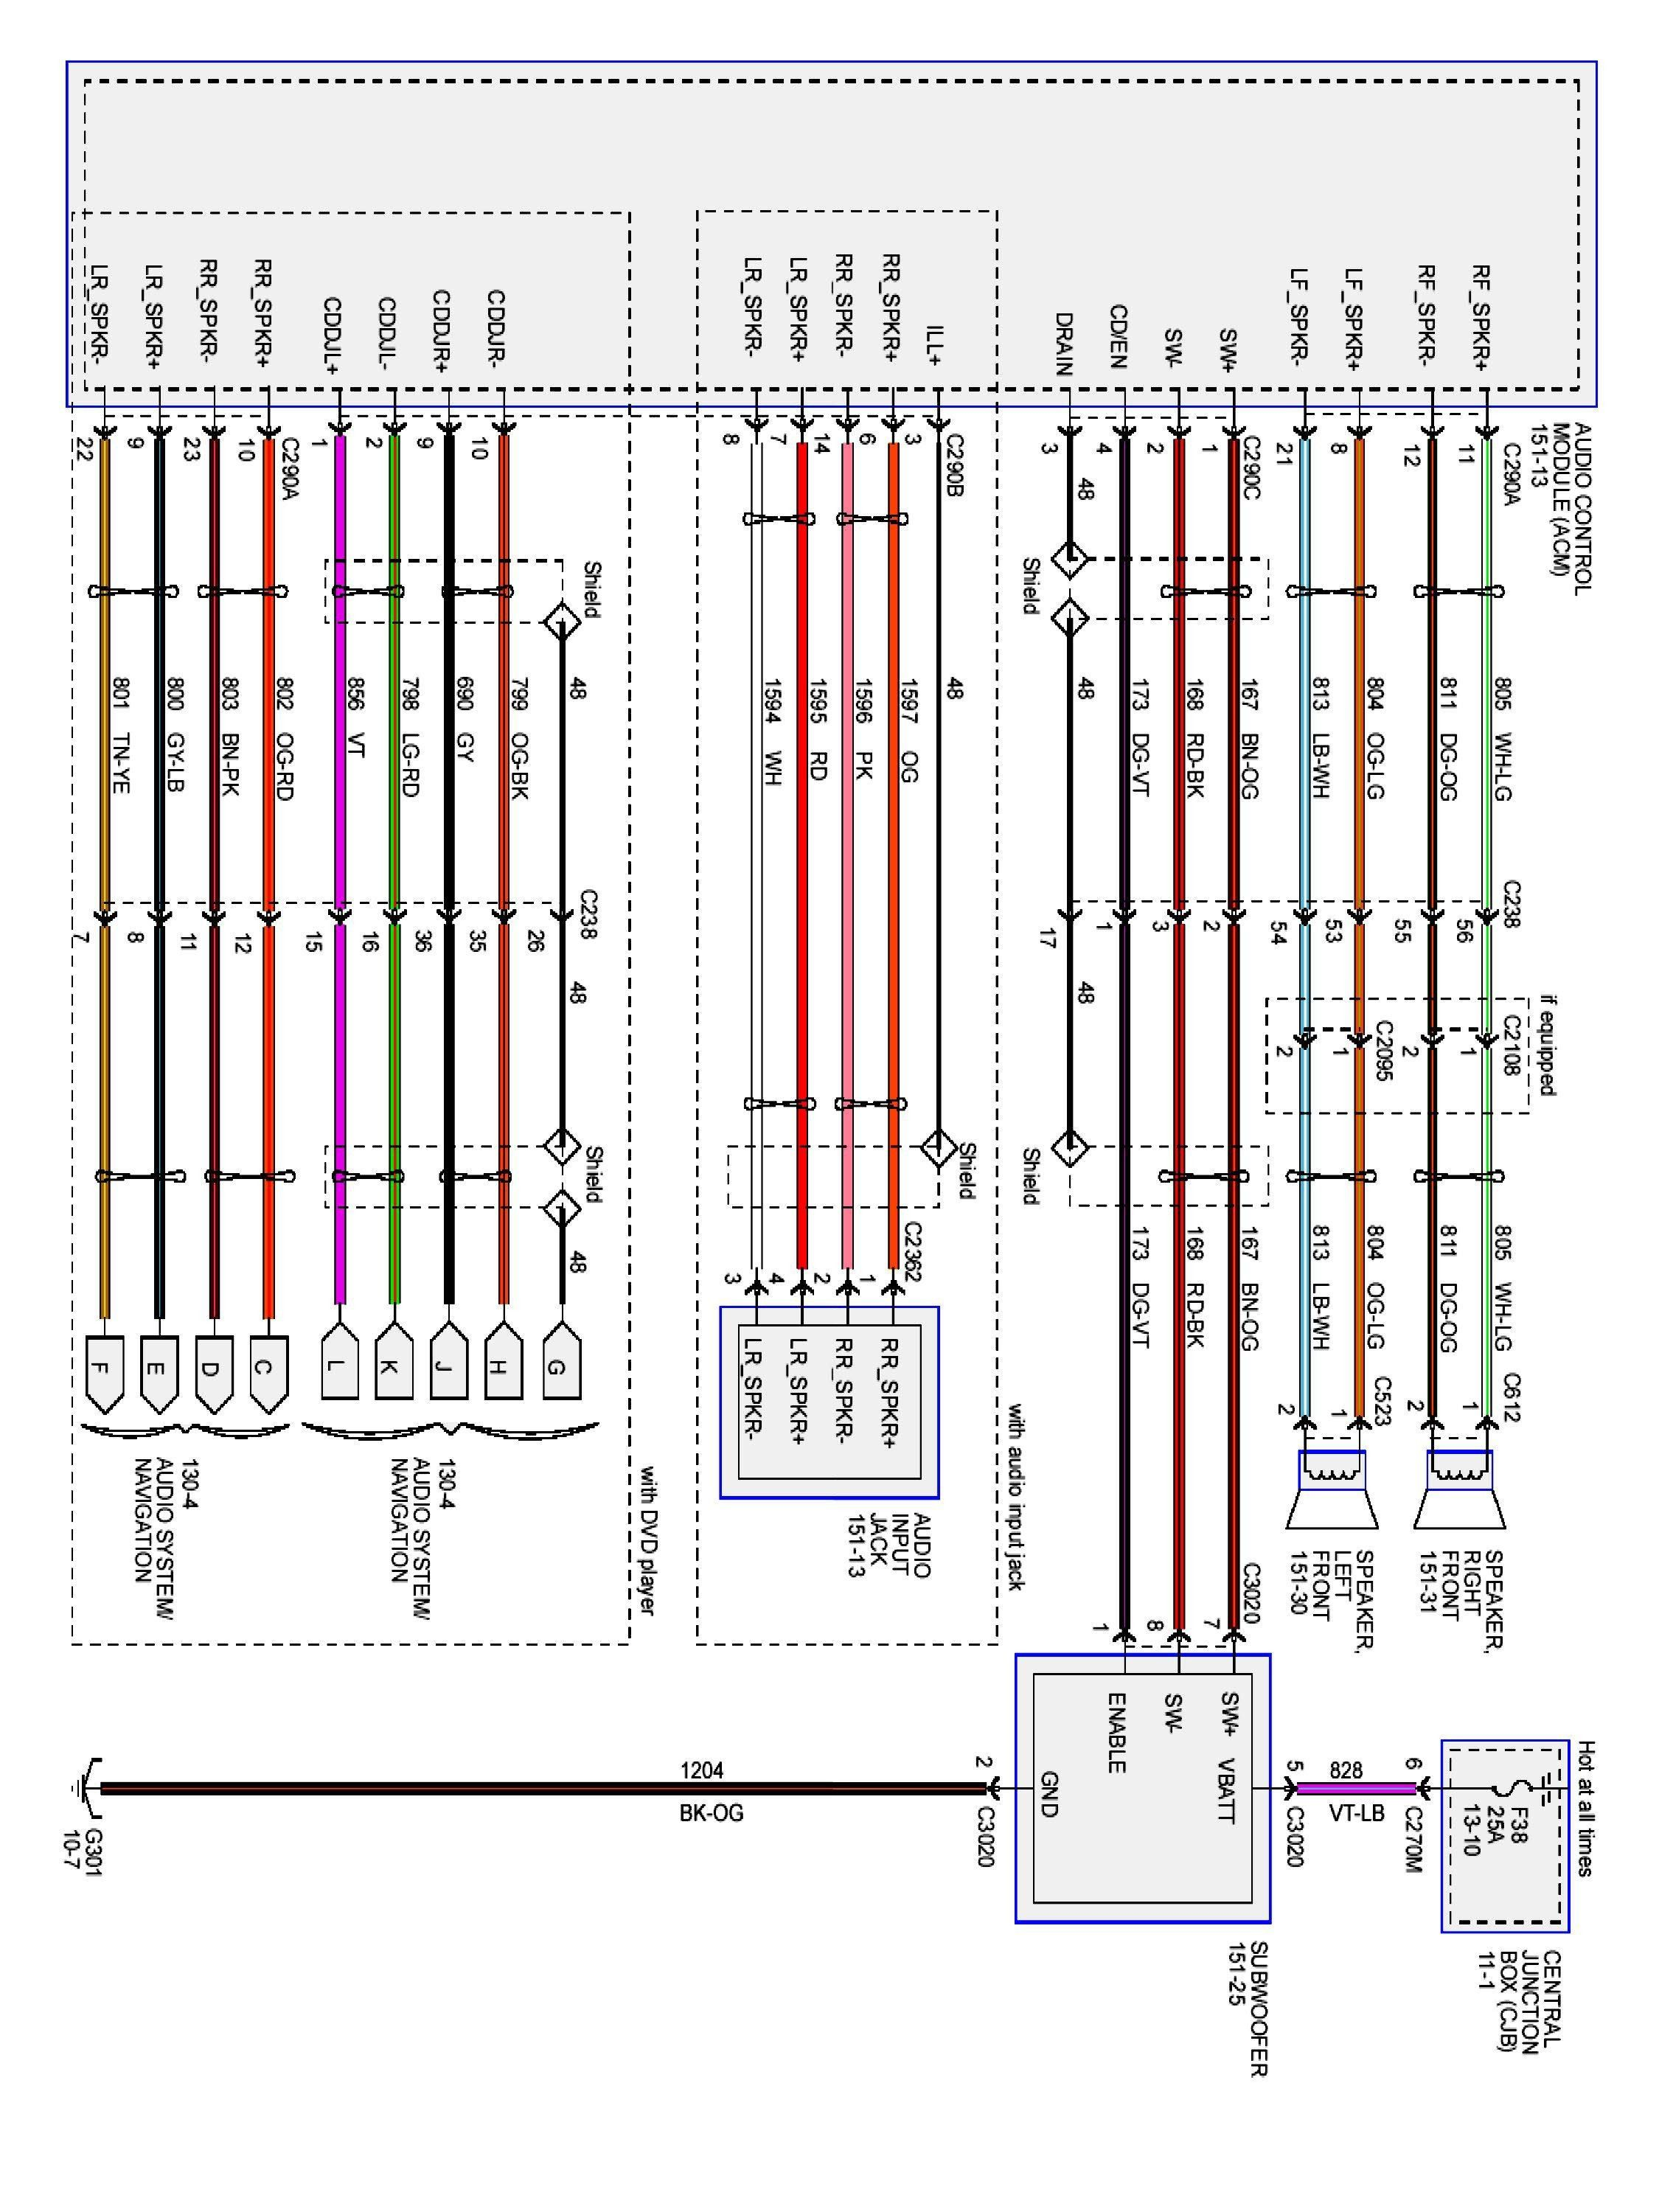 Elegant 2004 Ford F150 Radio Wiring Diagram In 2020 2004 Ford F150 Trailer Wiring Diagram Diagram